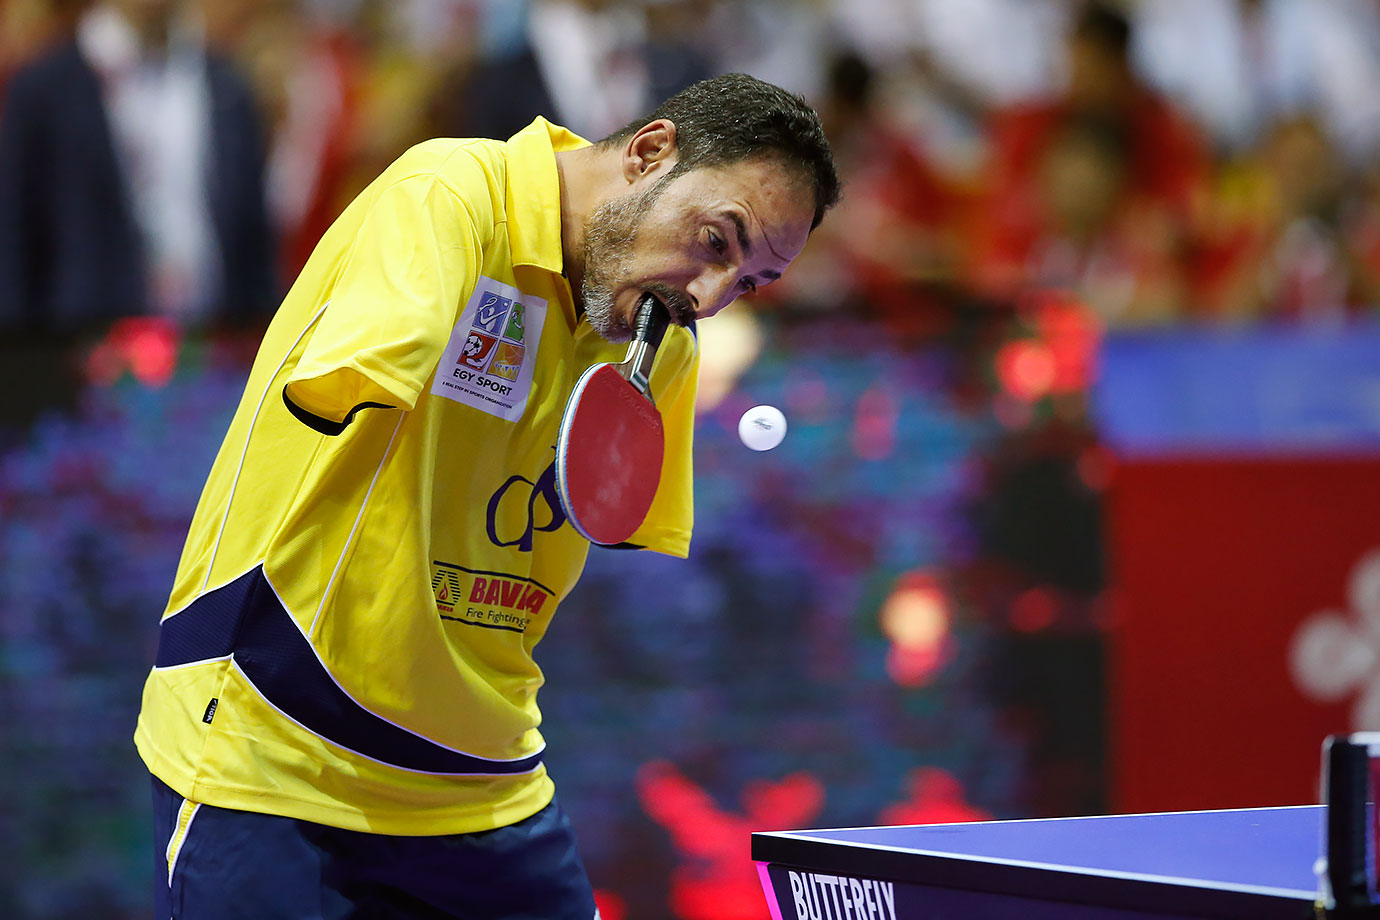 Egyptian Para Table Tennis champion Ibrahim Hamato returns a shot during his exhibition match ahead of the finals of the World Team Table Tennis Championship in Kuala Lumpur, Malaysia.